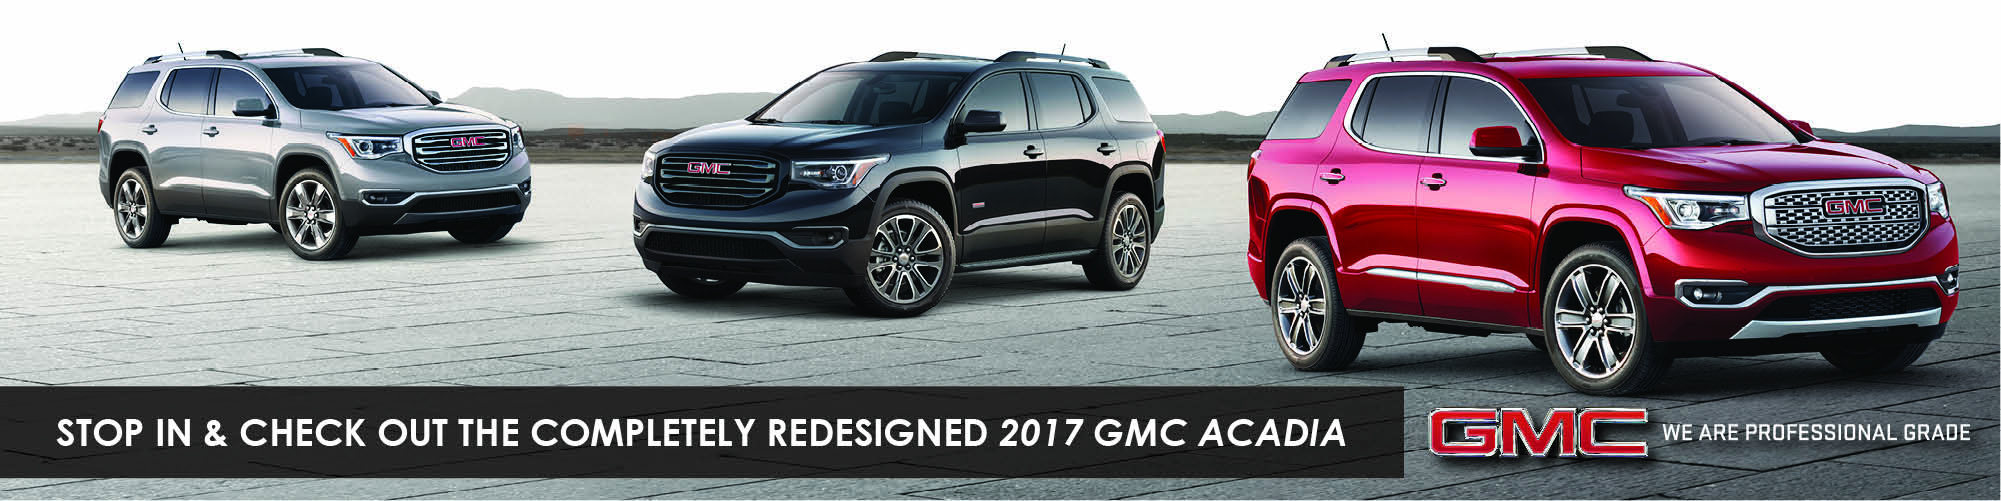 The Completely Redesigned 2017 GMC Acadia